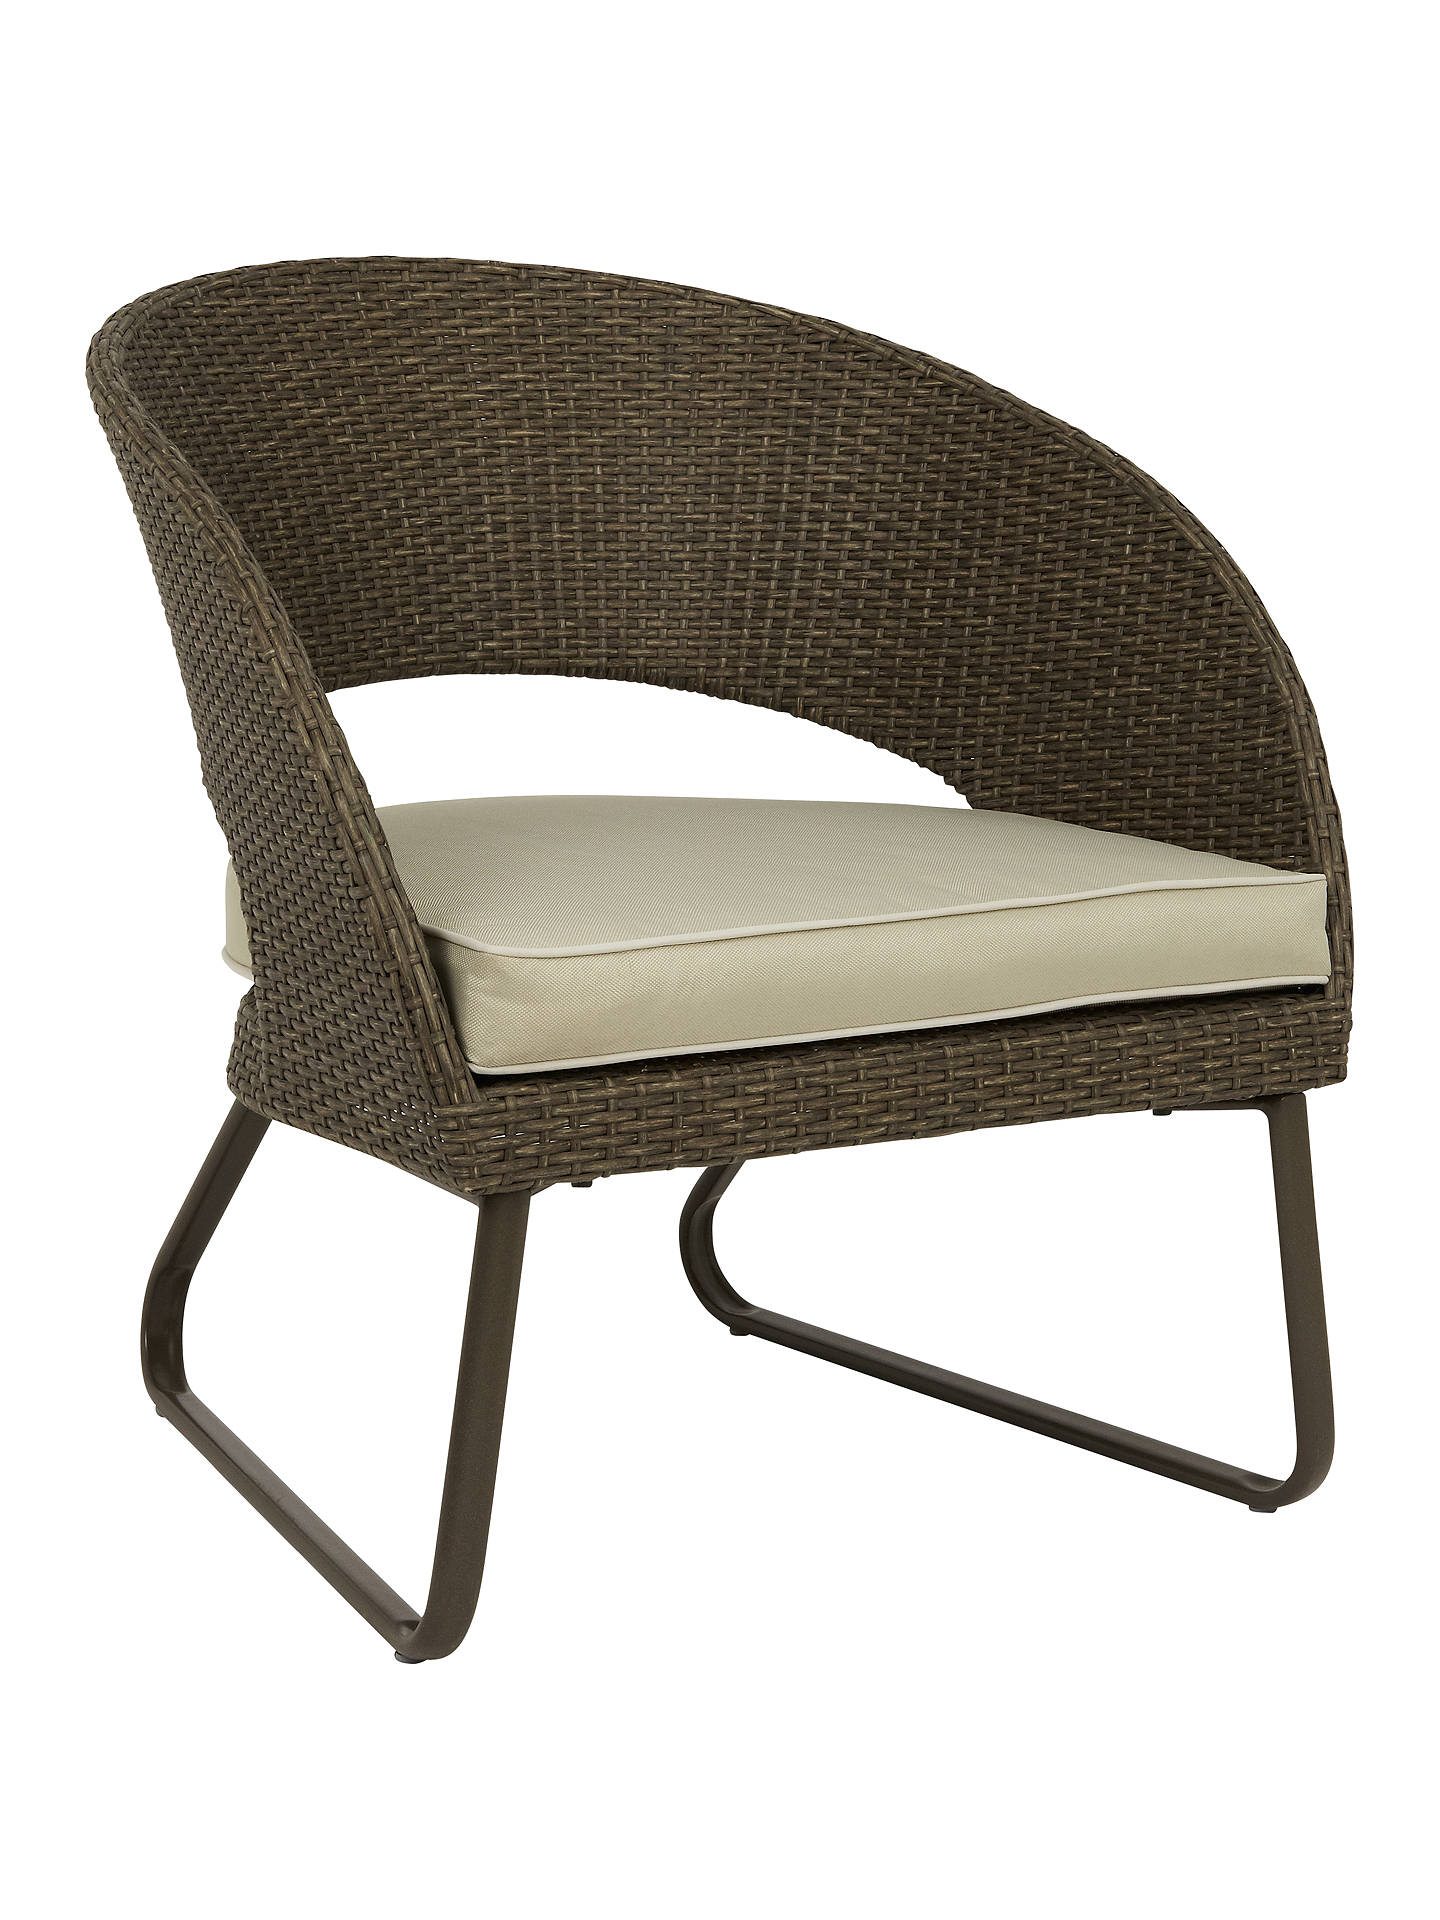 Buy John Lewis & Partners Corsica Garden Lounging Armchair, Set of 2, Pebble Grey Online at johnlewis.com